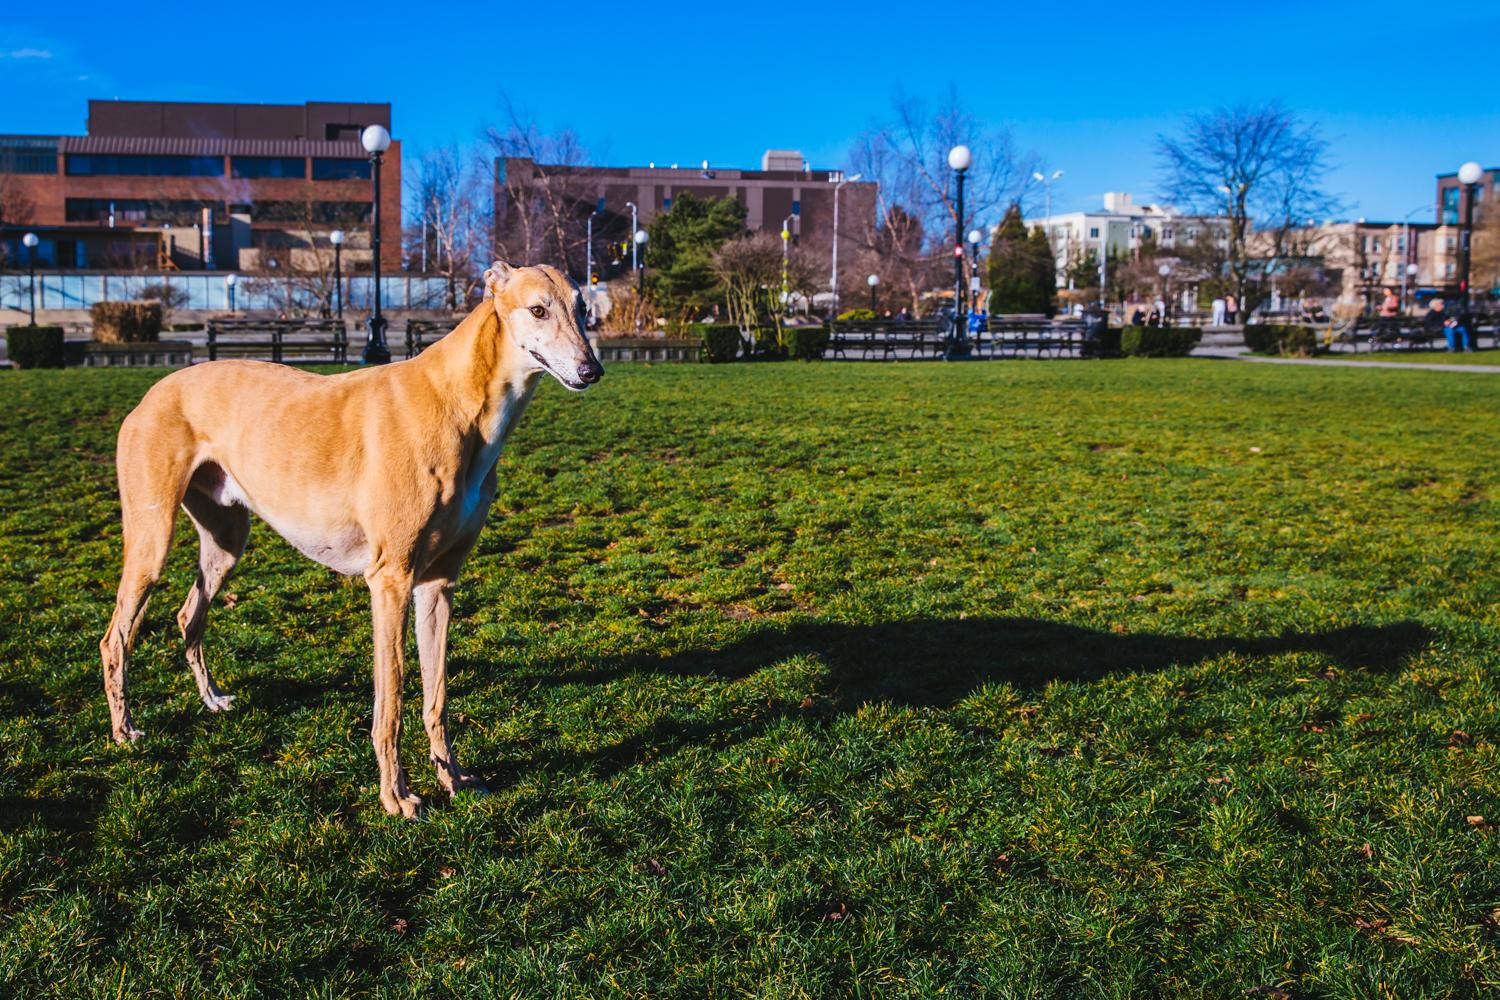 Hey, Hoyt! Hoyt is a 7-year-old Greyhound and is enjoying a life of retirement after a life of racing in Florida. Hoyt likes to sleep, go on hikes, car rides, Jelly Bellys and licorice. He dislikes plain dog biscuits. The Seattle RUFFined Spotlight is a weekly profile of local pets living and loving life in the PNW. If you or someone you know has a pet you'd like featured, email us at hello@seattlerefined.com or tag #SeattleRUFFined and your furbaby could be the next spotlighted! (Image: Sunita Martini / Seattle Refined).